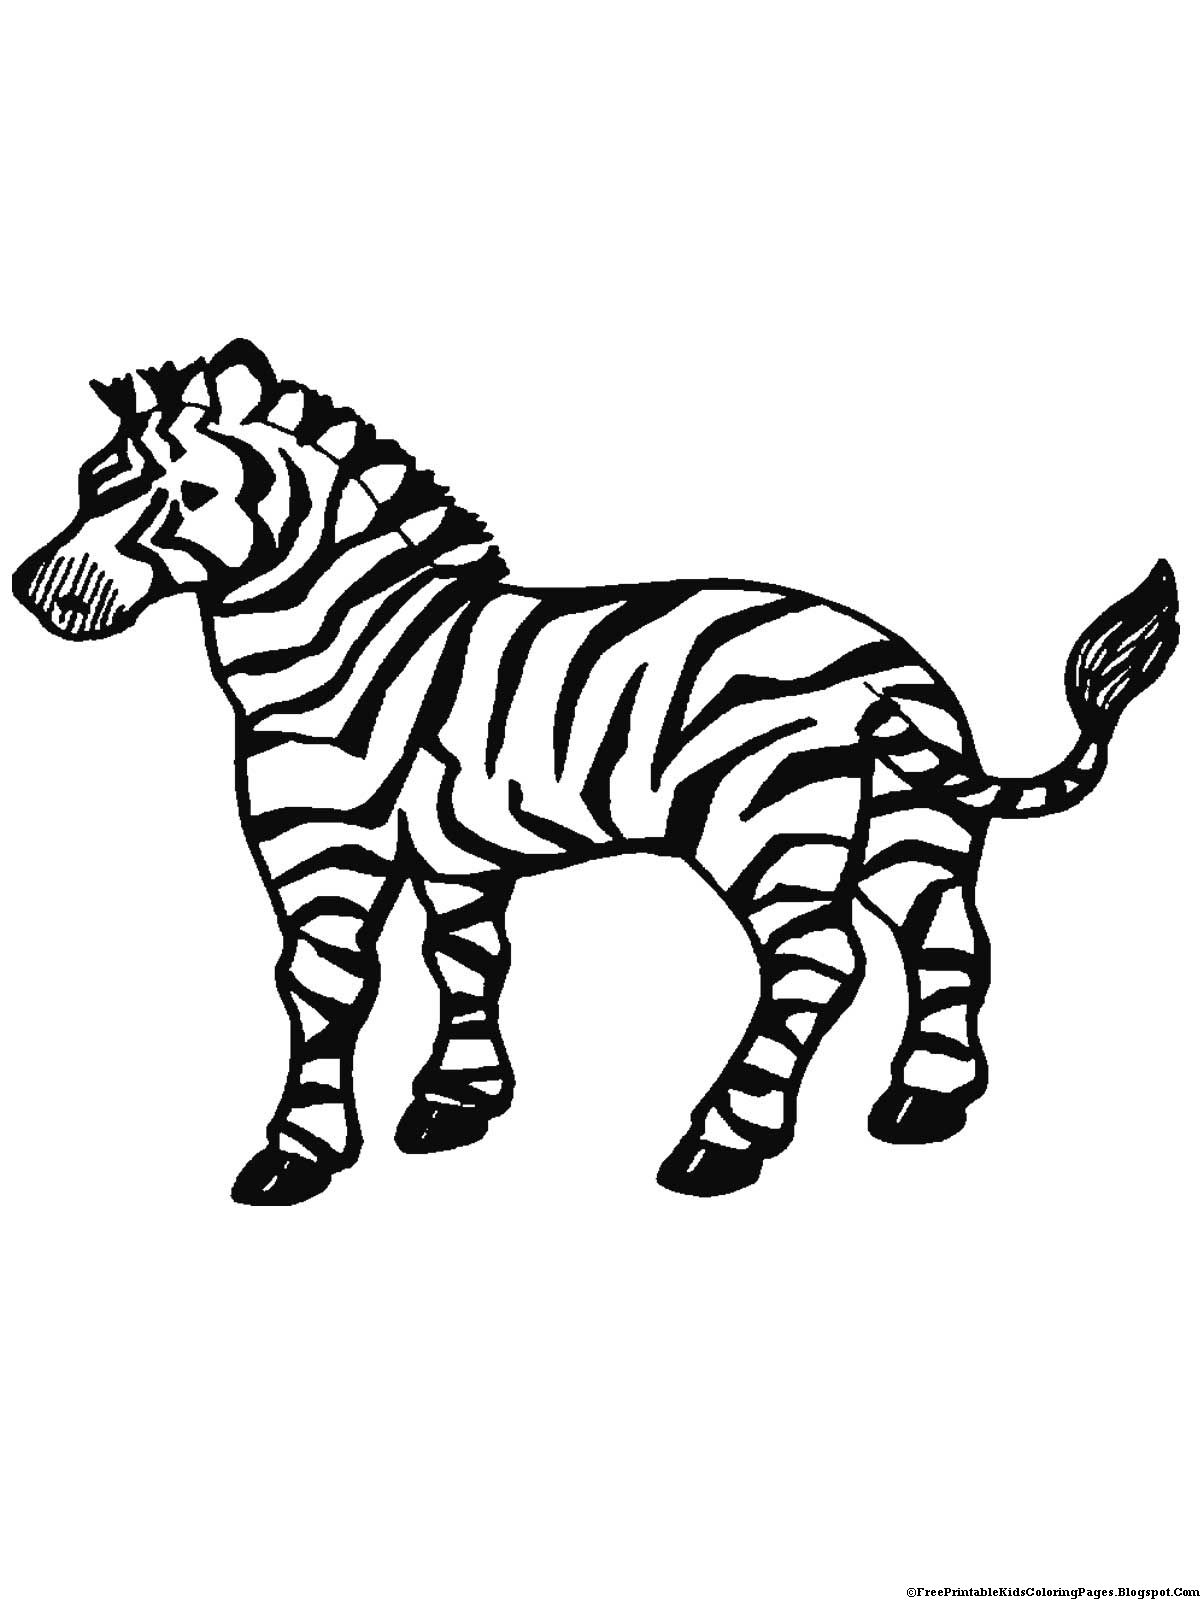 Zebra Coloring Pages | AMP Blogger design